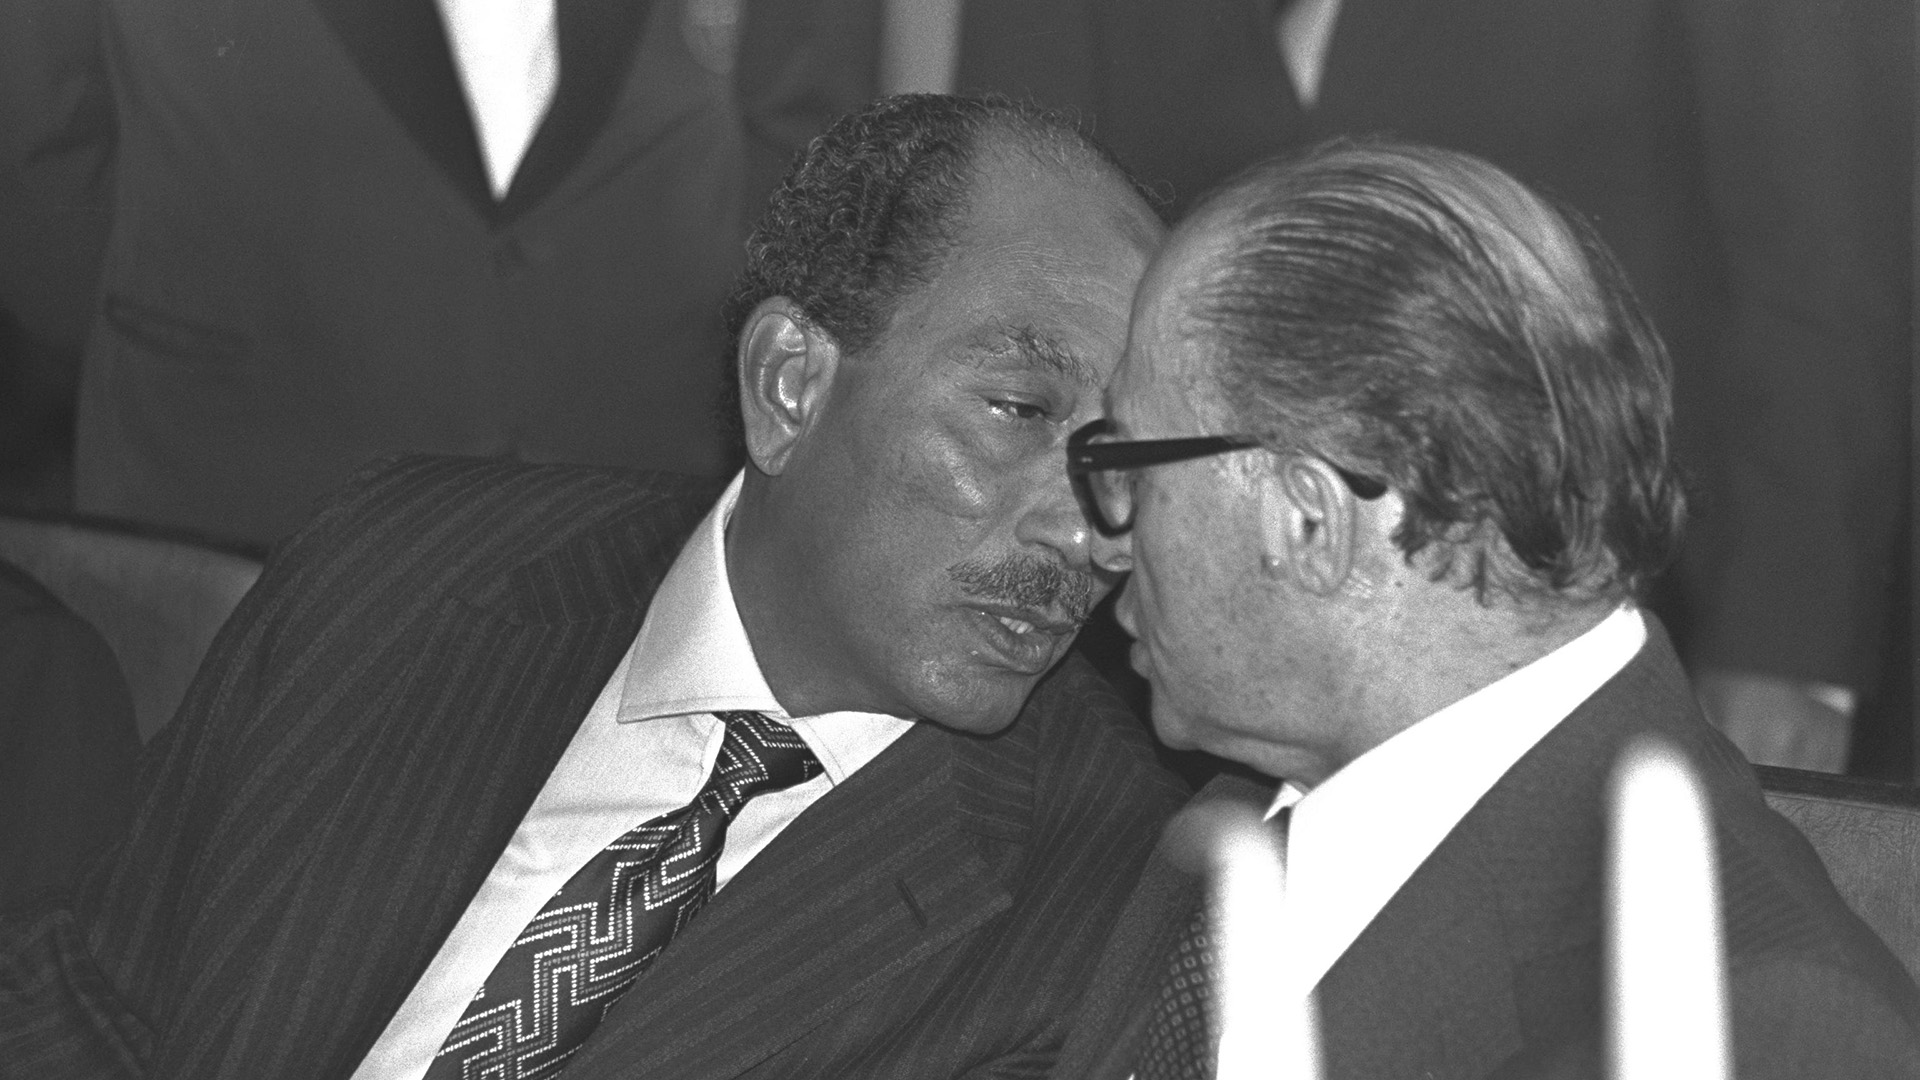 anwar sadat statement to the knesset essay Anwar sadat statement to the knesset essay, gcse english language creative writing resources, english creative writing ks2 posted at 09:28h in uncategorized by 0.